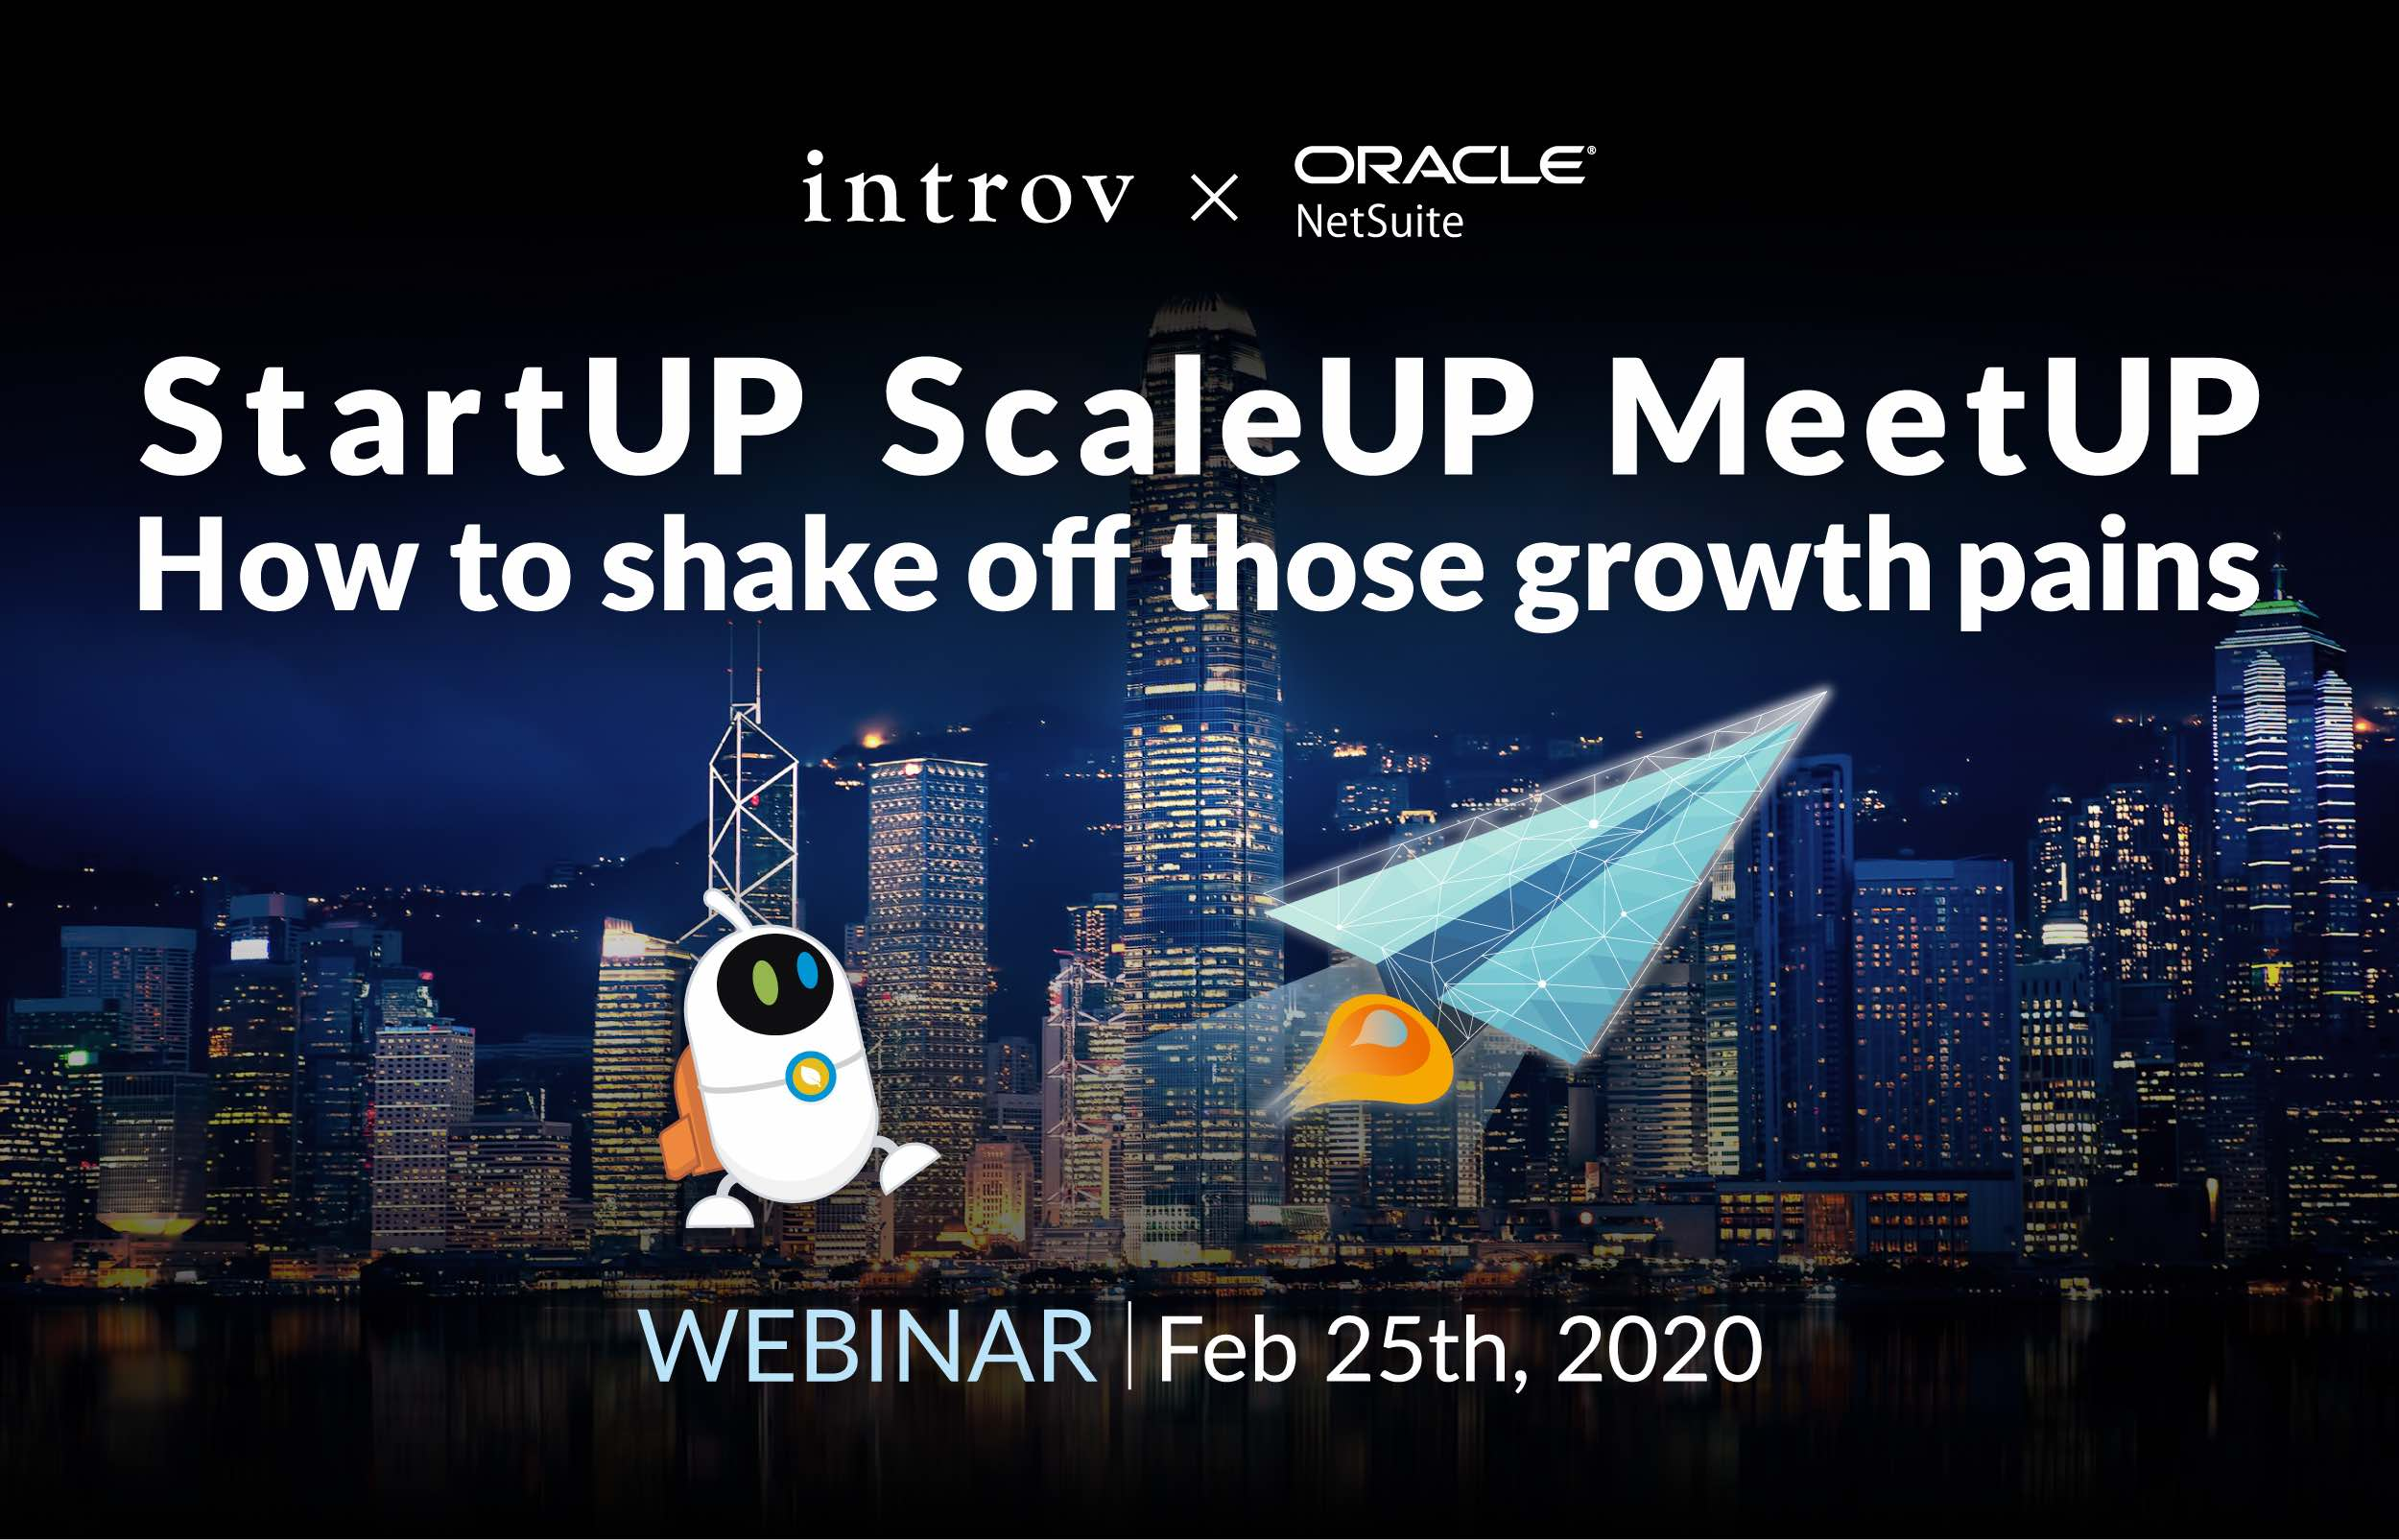 StartUP ScaleUP MeetUP, How to shake off those growth pains (February 25th, 2020)